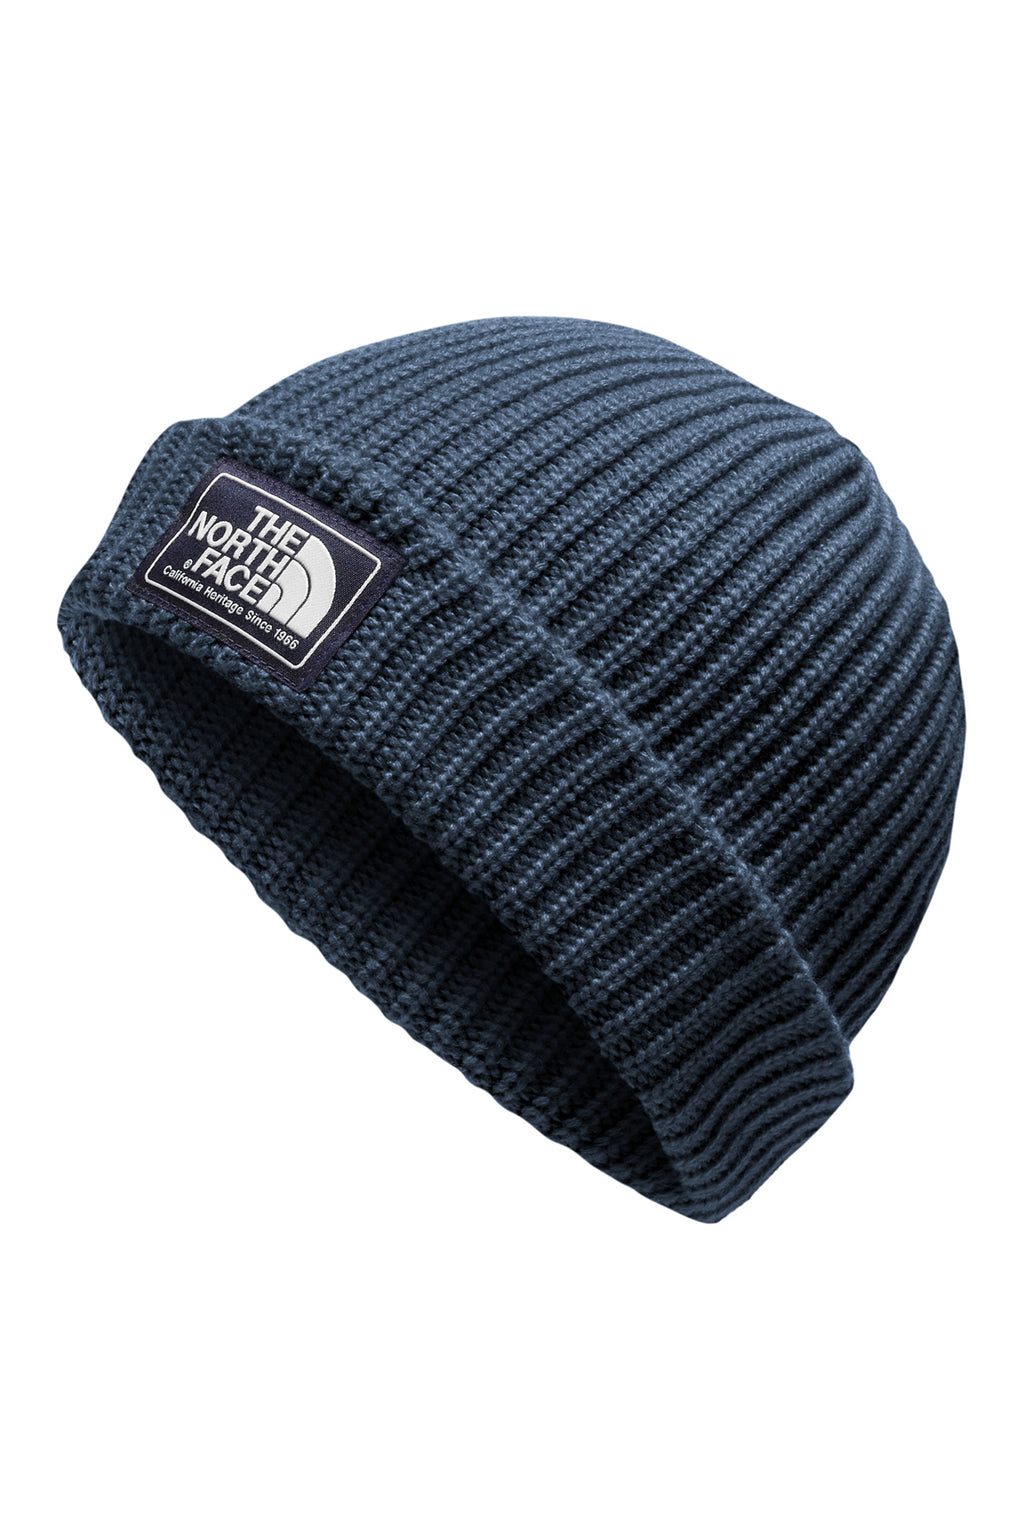 The North Face Accs Salty Dog Beanie